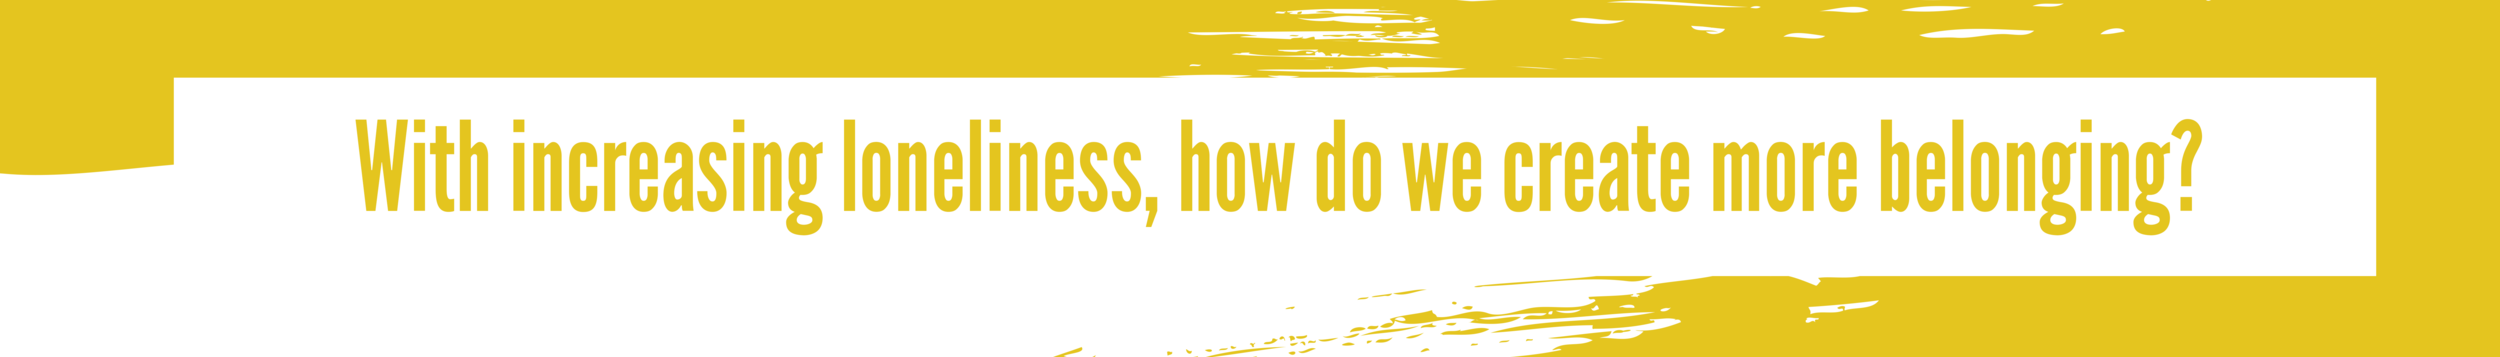 question graphic header.png